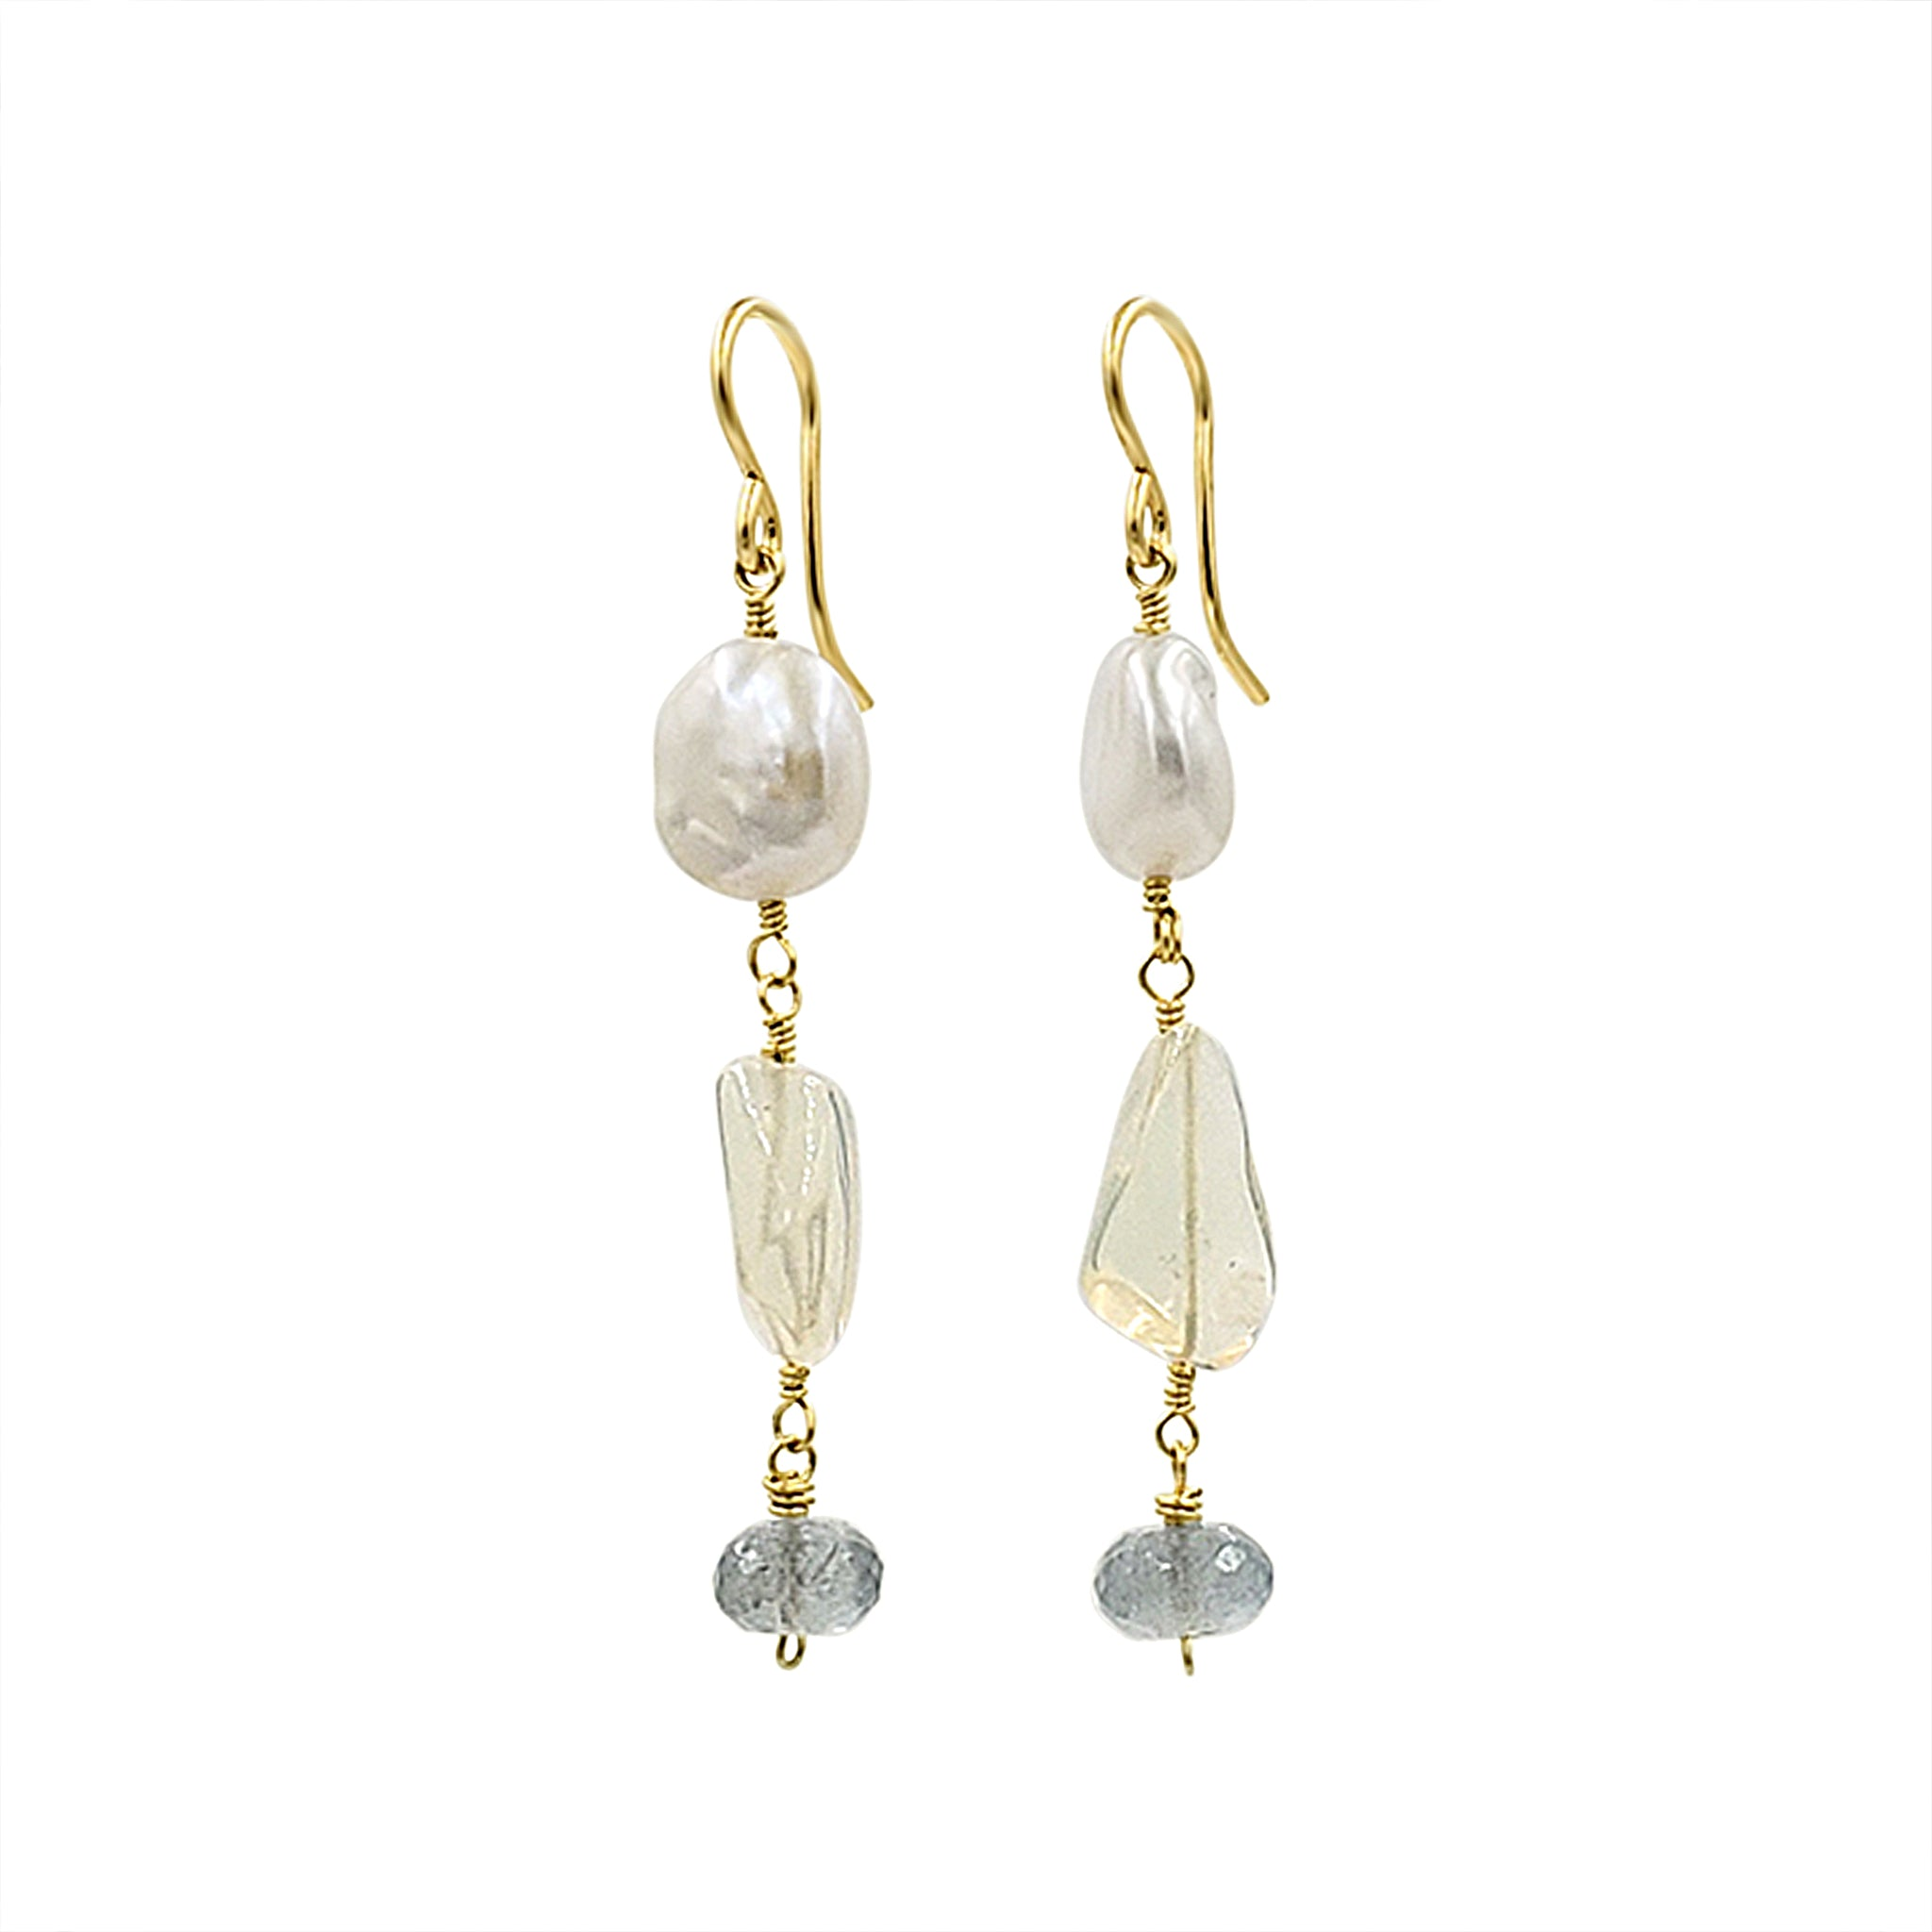 Aquamarine + Opal Earrings - Sati Gems Hawaii Healing Crystal Gemstone Jewelry